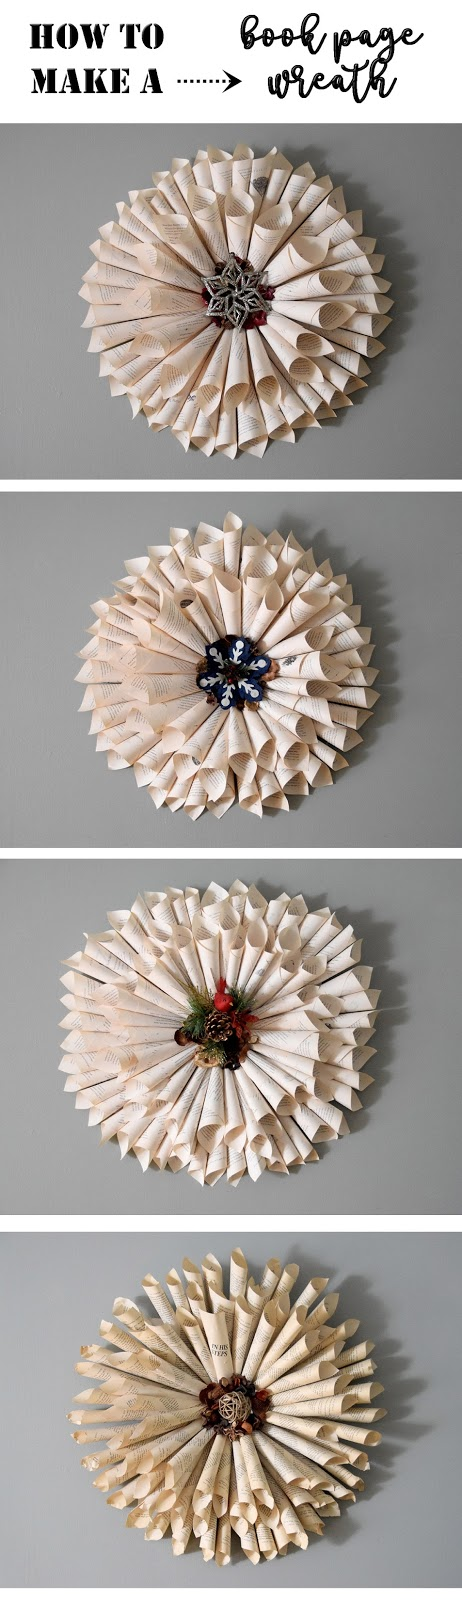 examples of book page wreath for Christmas